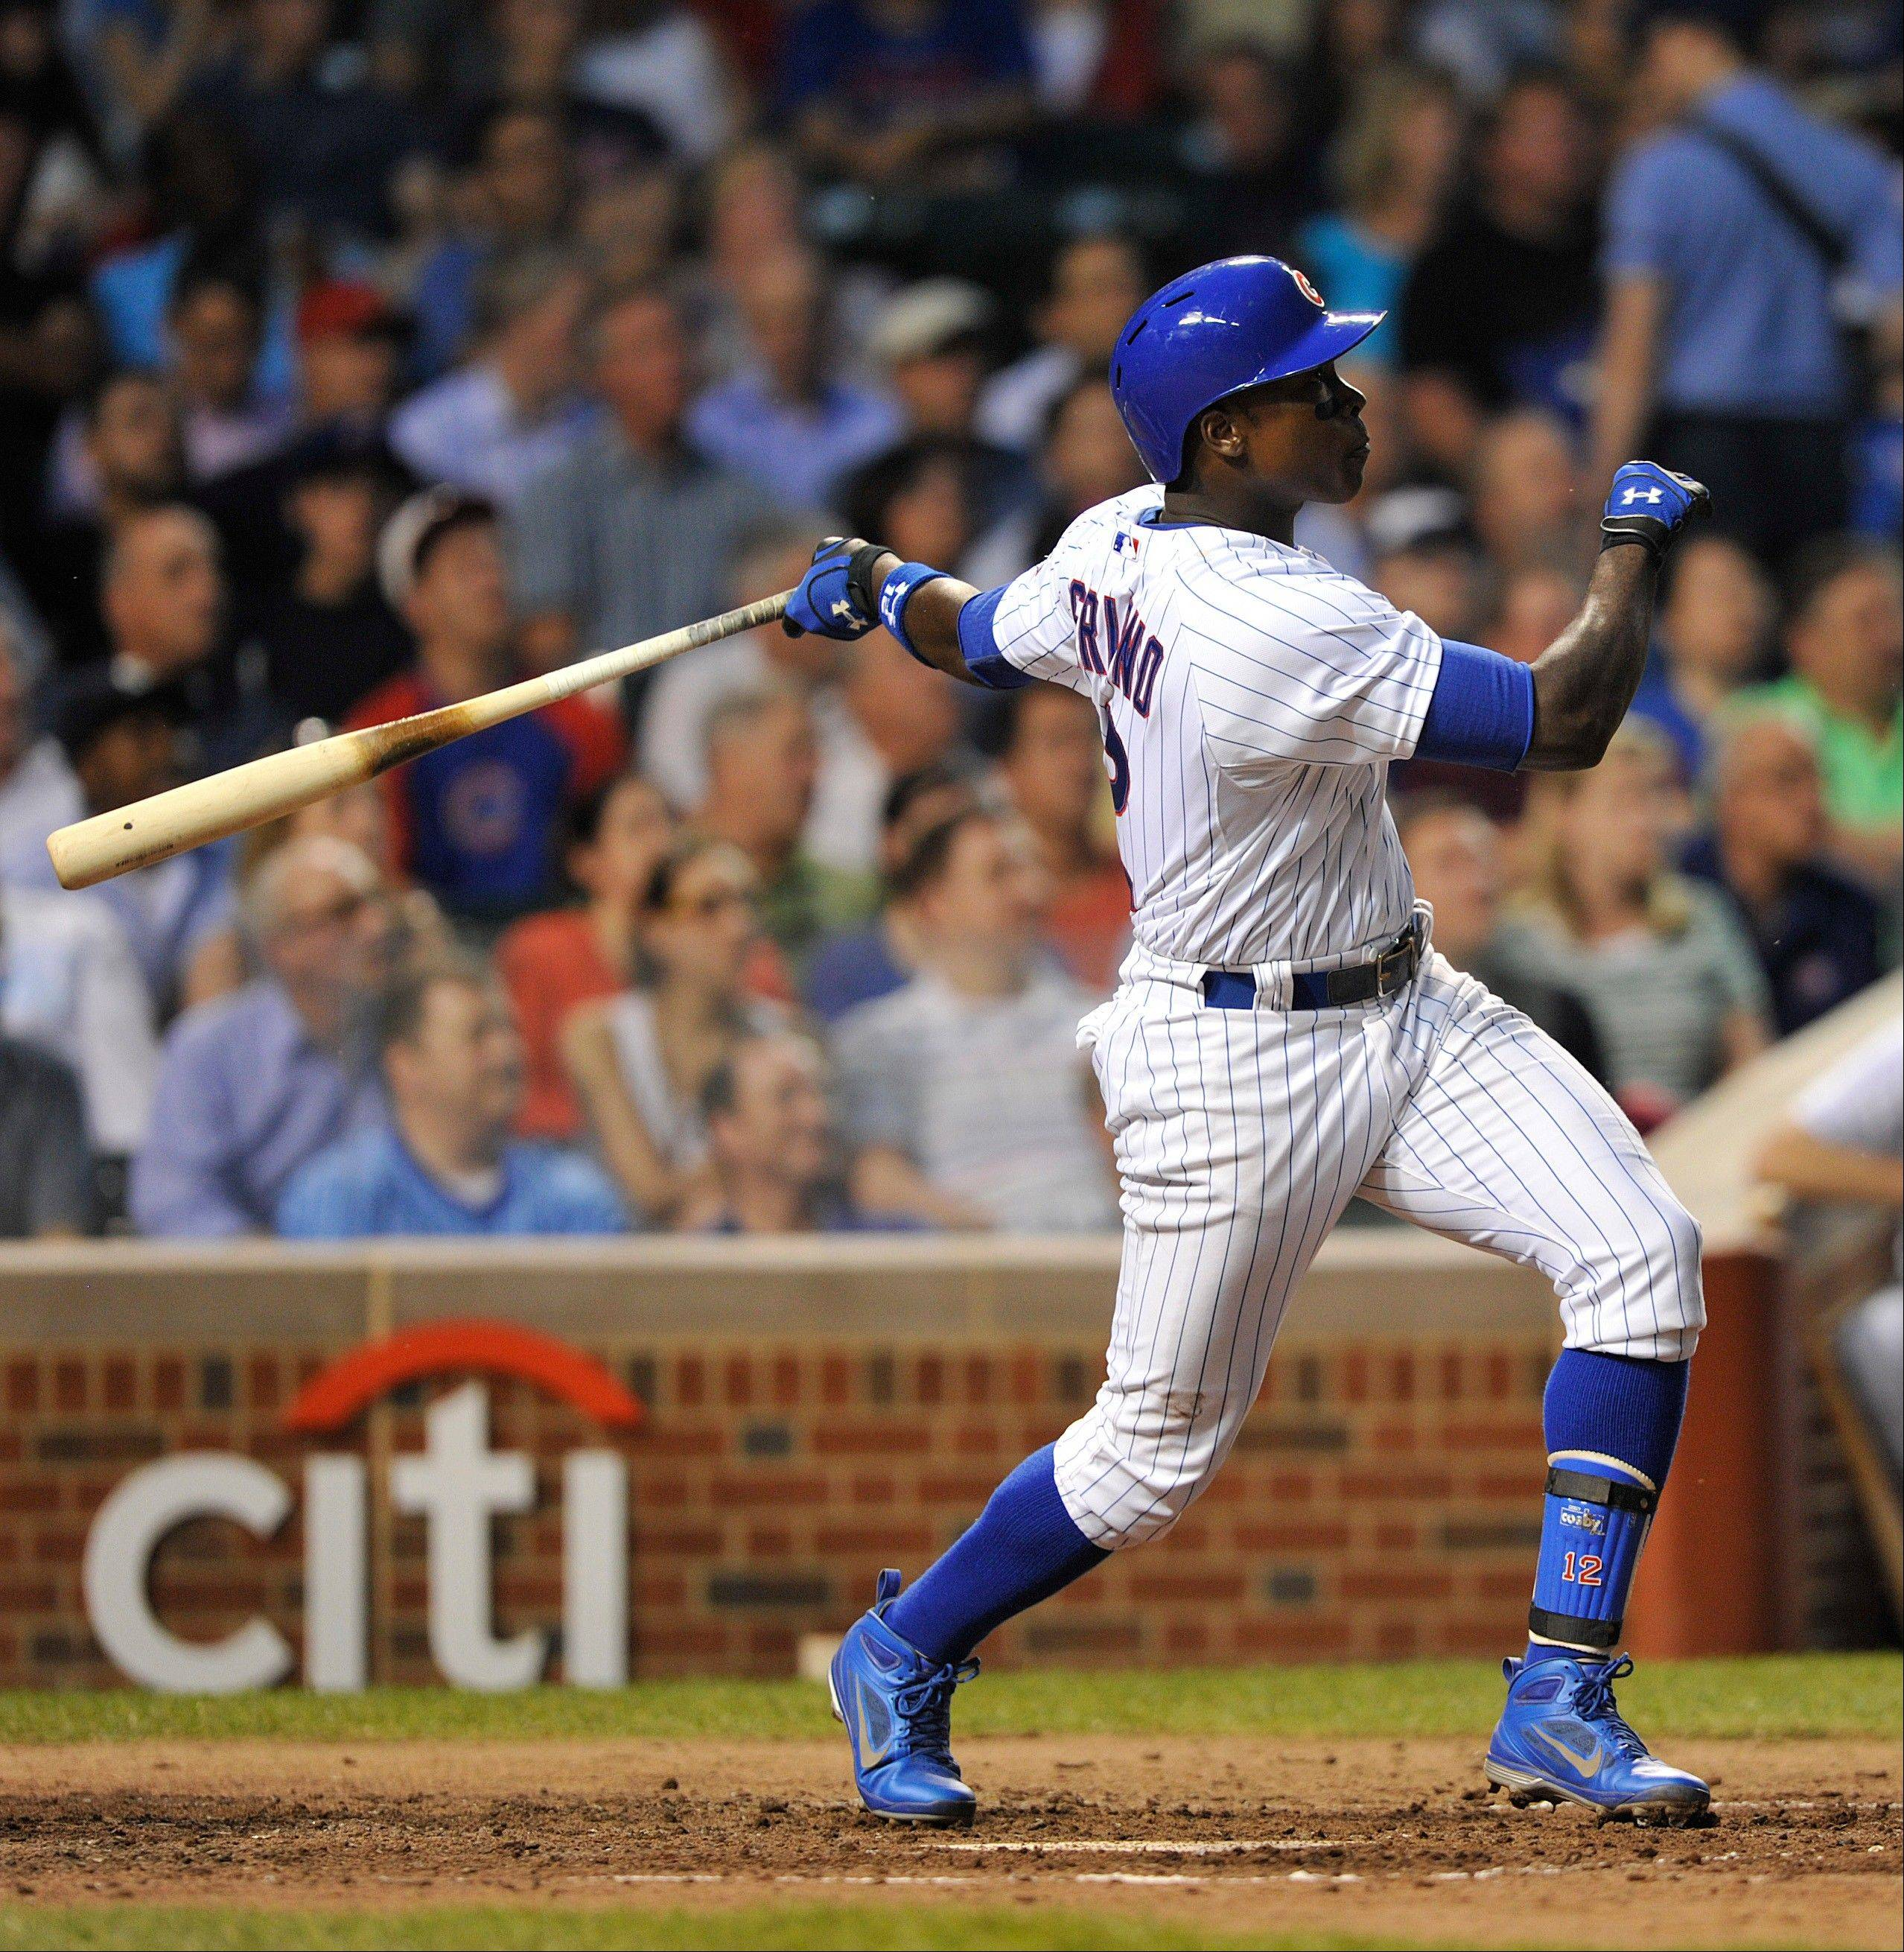 The Cubs� Alfonso Soriano watches his sacrifice fly against the Cincinnati Reds Tuesday at Wrigley Field. The Cubs lost 12-2.